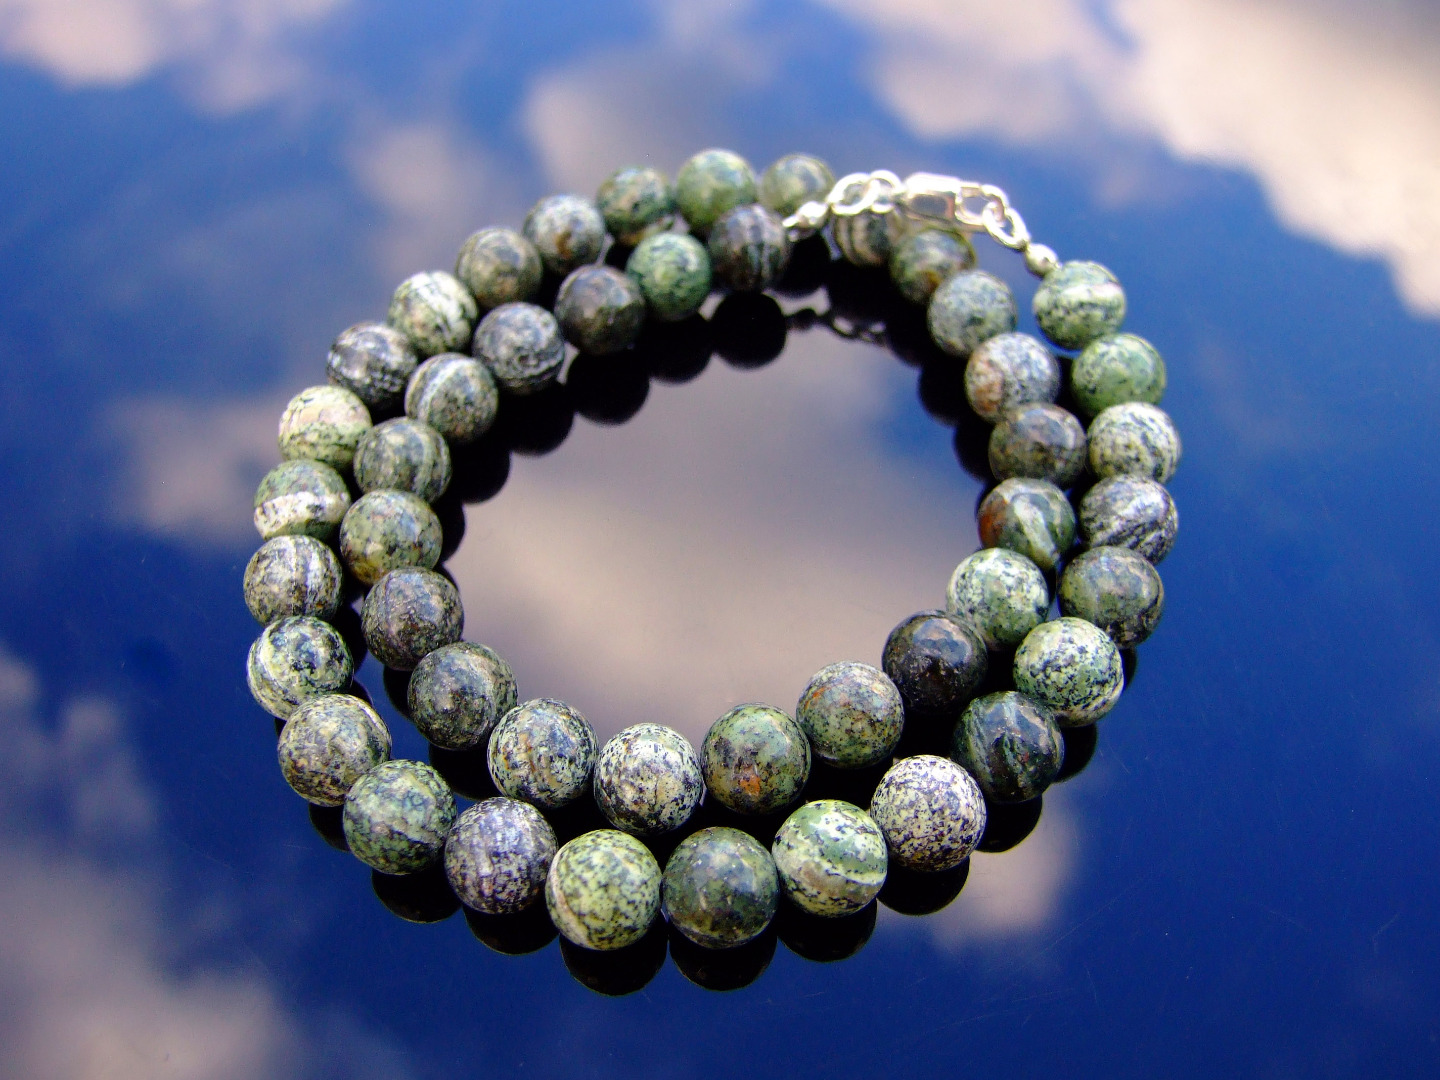 Chrysocolla Natural Gemstone Necklace 8mm Beaded Silver 16-30inch Healing Stone